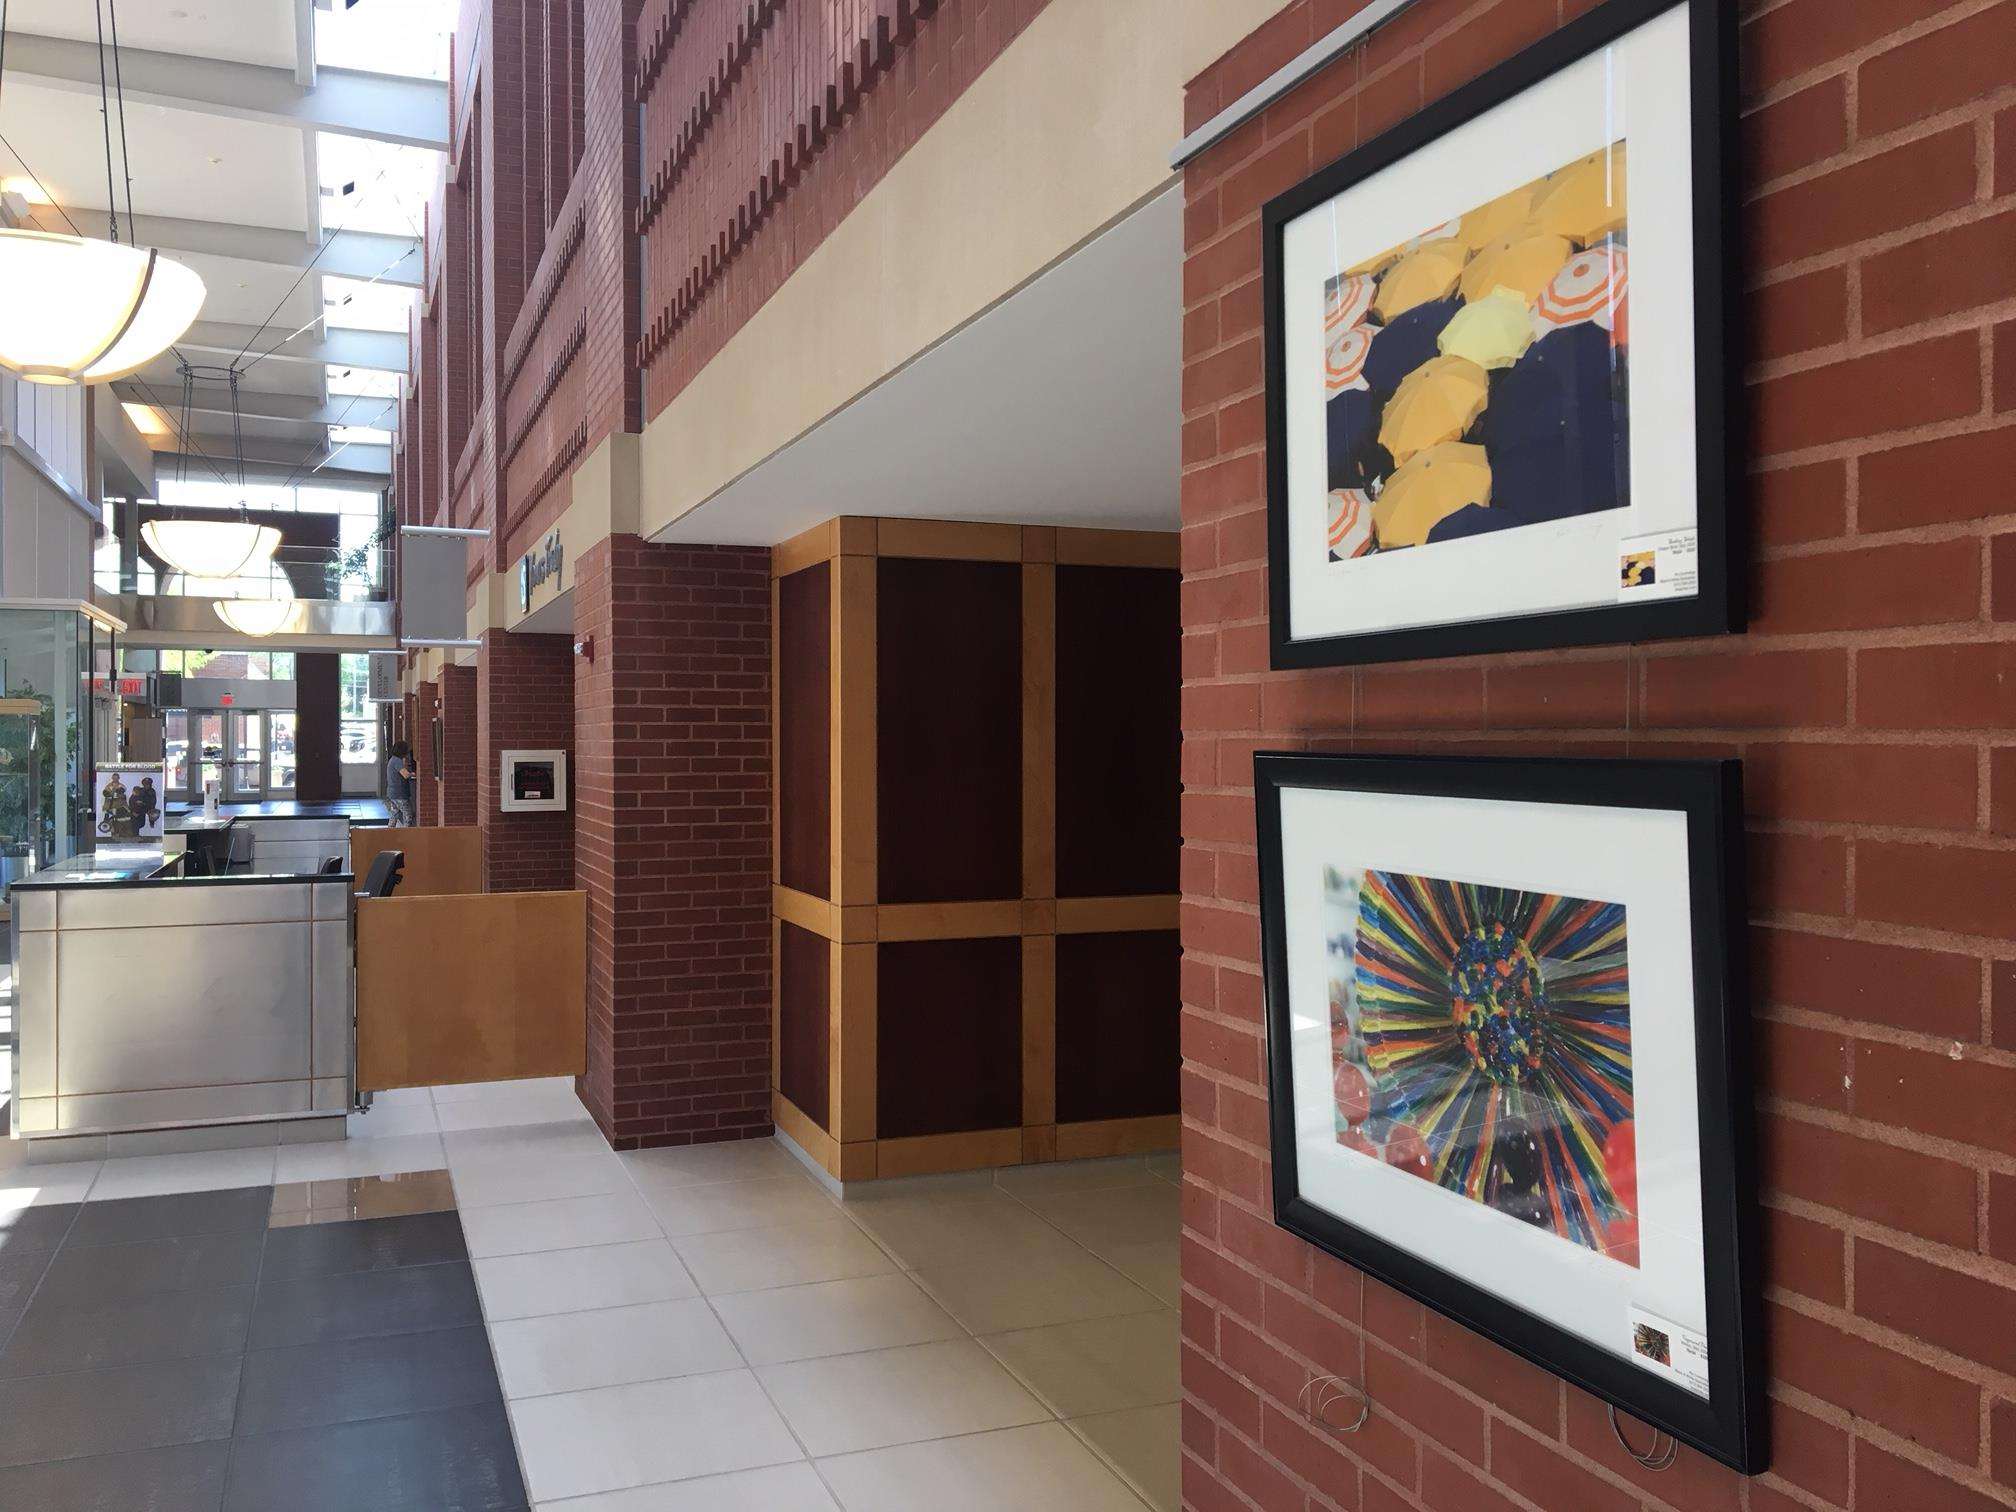 Image of a City Hall artwork exhibit